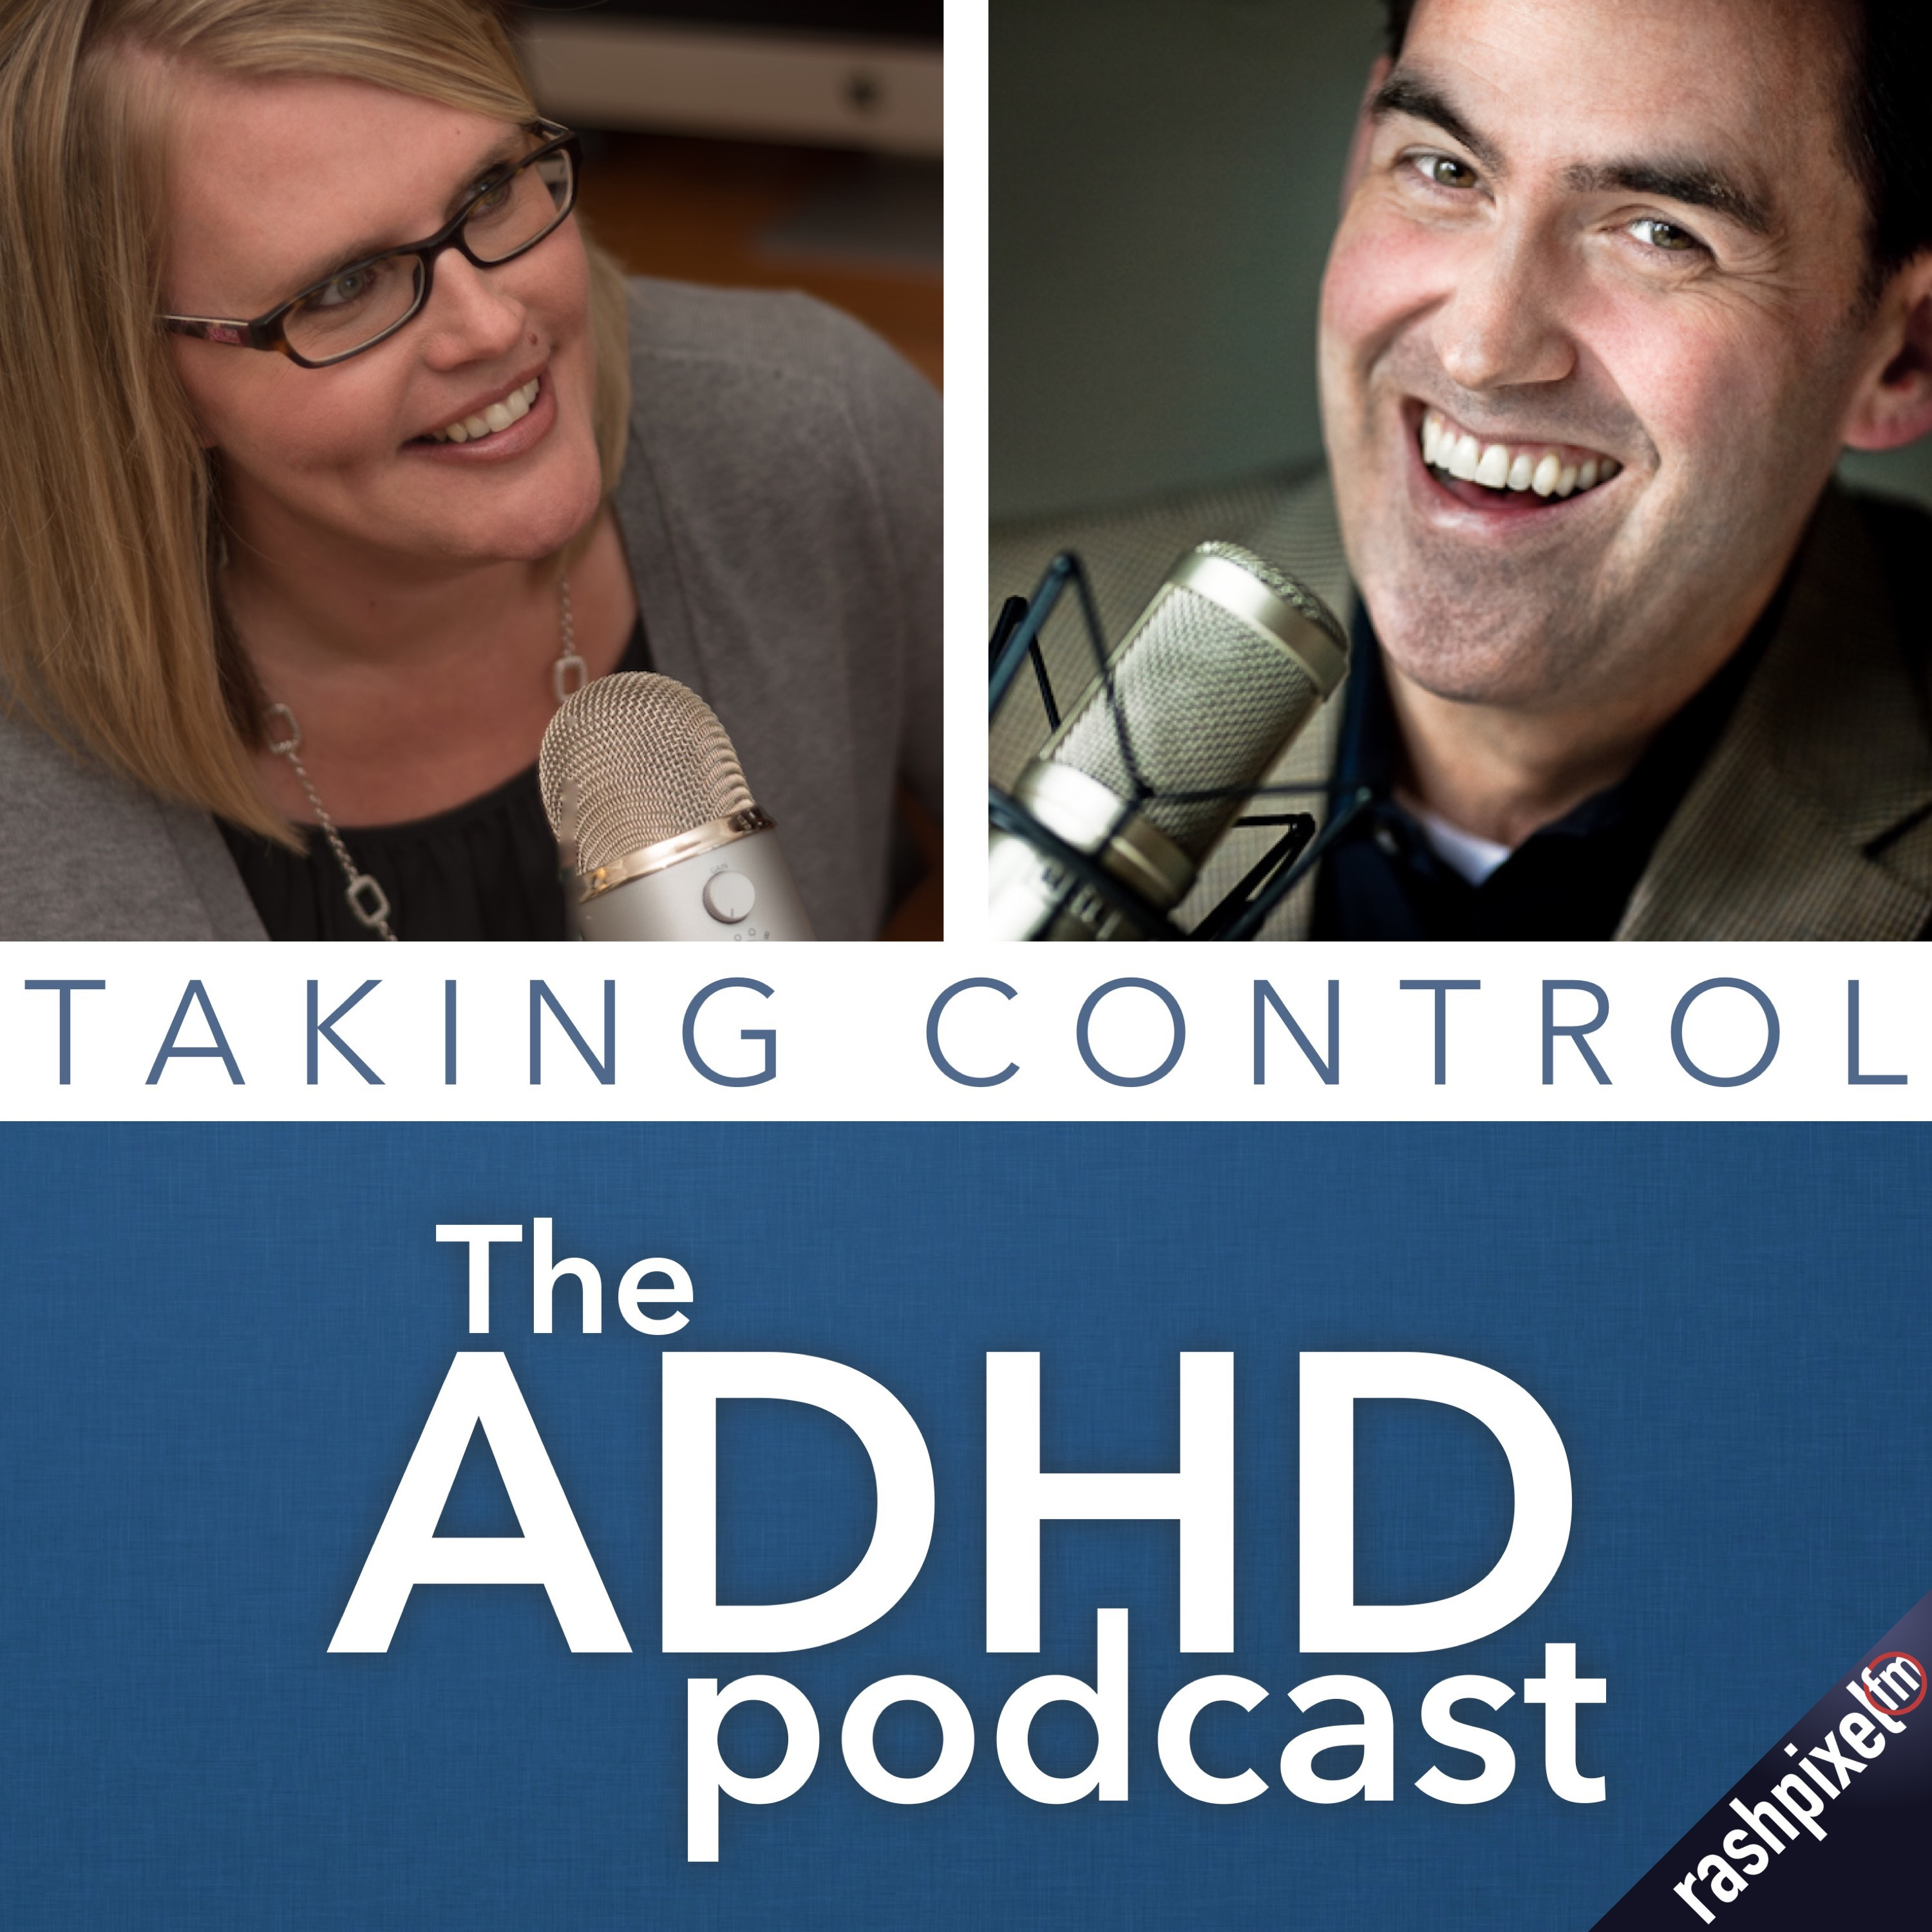 Taking Control: The ADHD Podcast